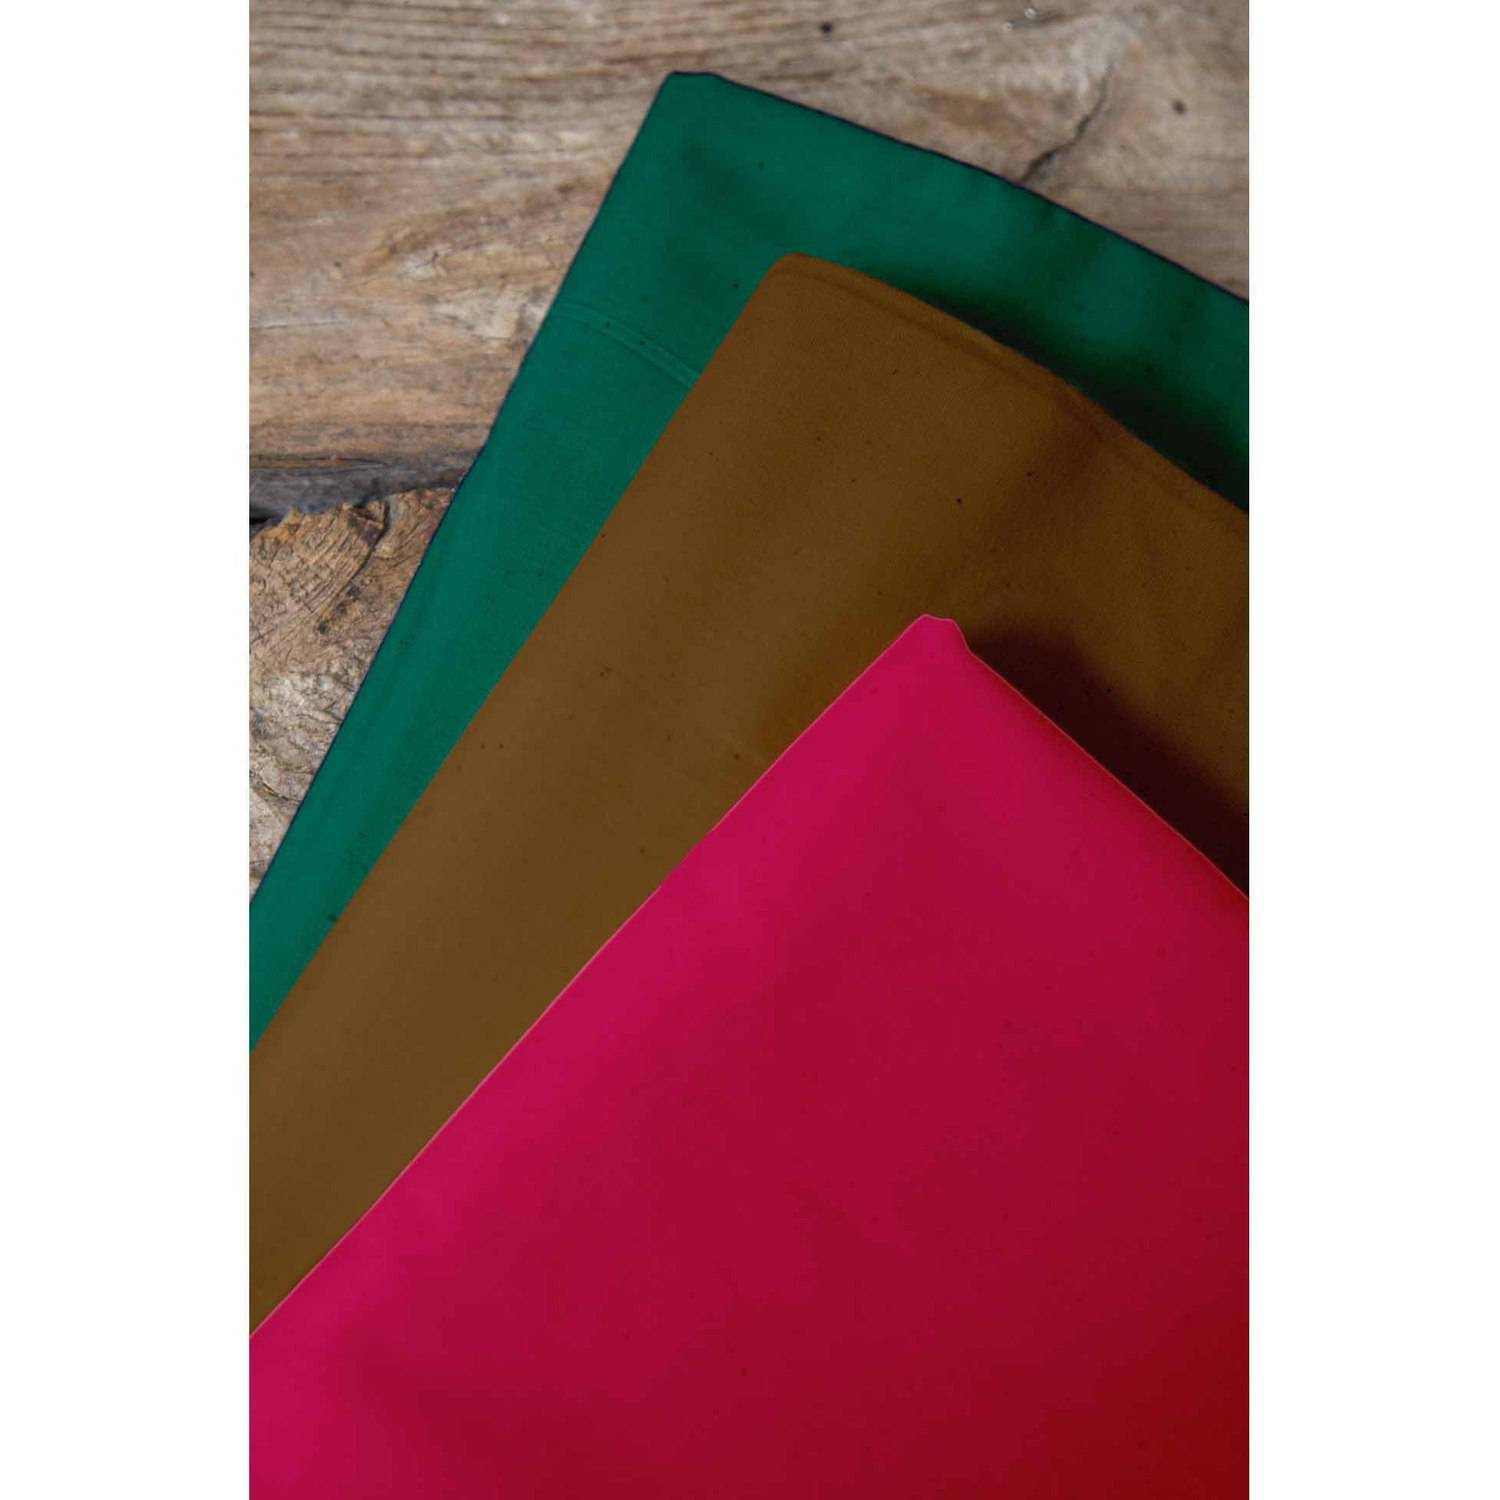 "Fall Fever Palencia Broadcloth Fabric Bundle, Berry-Trail Brown-Forest Green, 44/45"" Width, 2-yd Cuts"